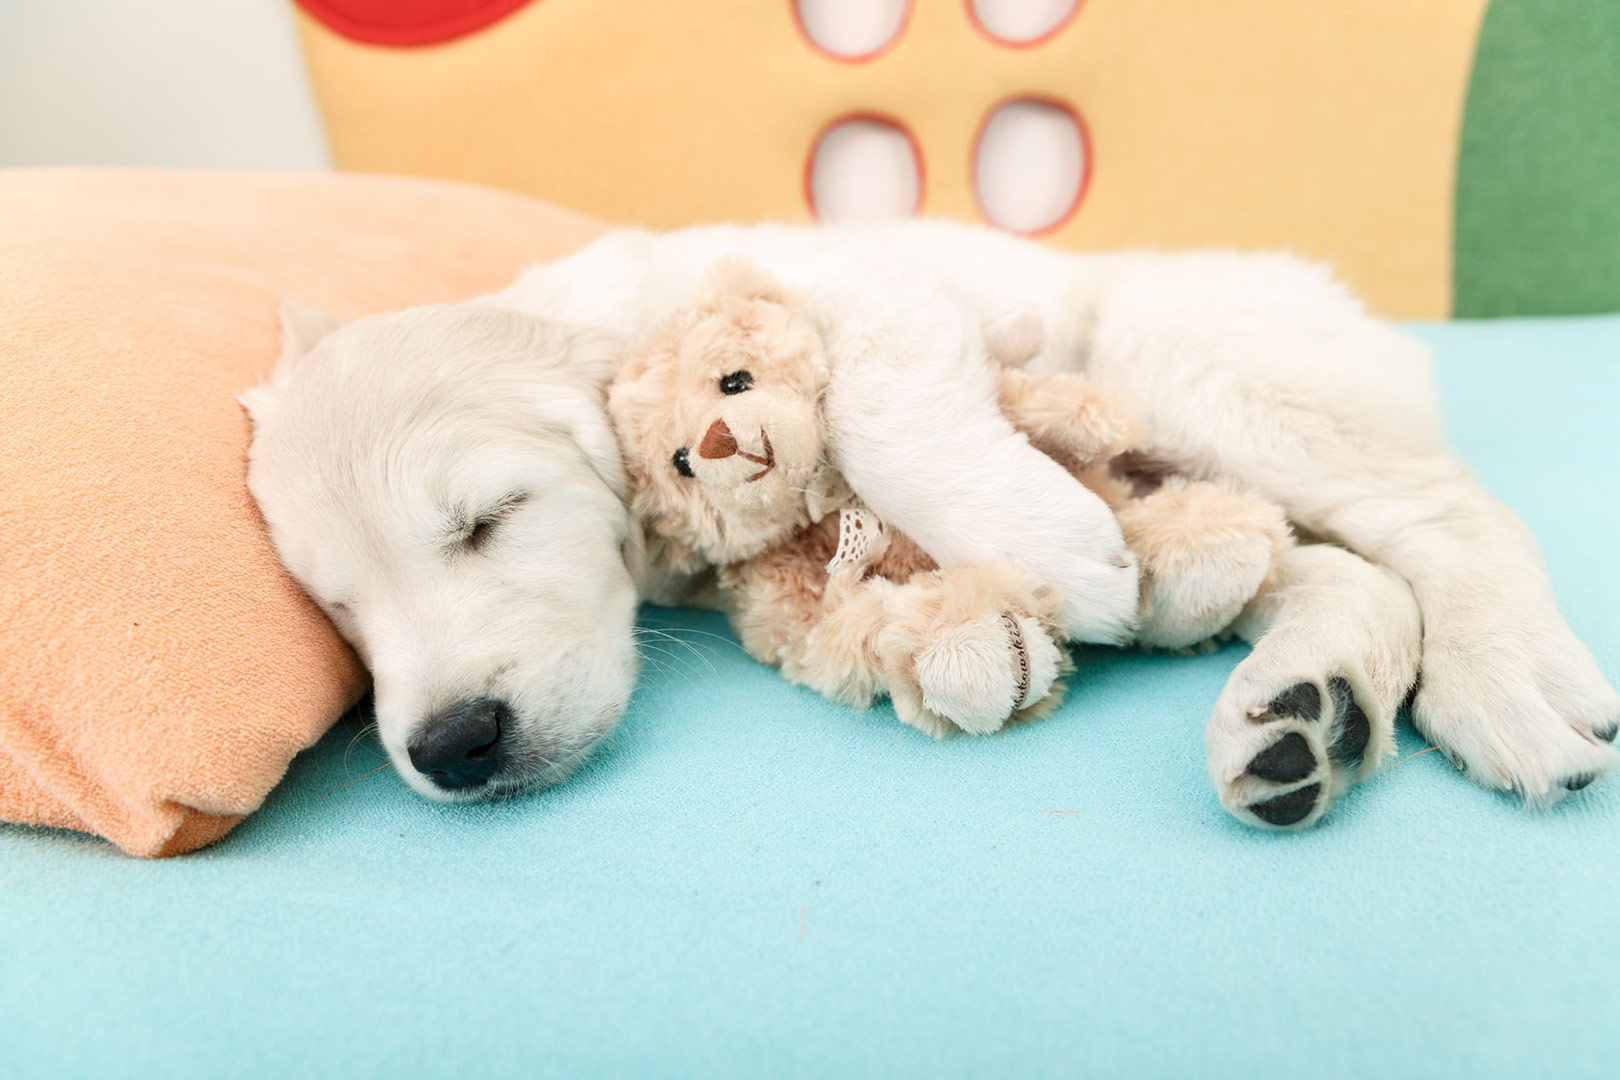 Me-My-Pets-blog-getting-a-puppy-picture-of-a-puppy-with-a-toy-asleep